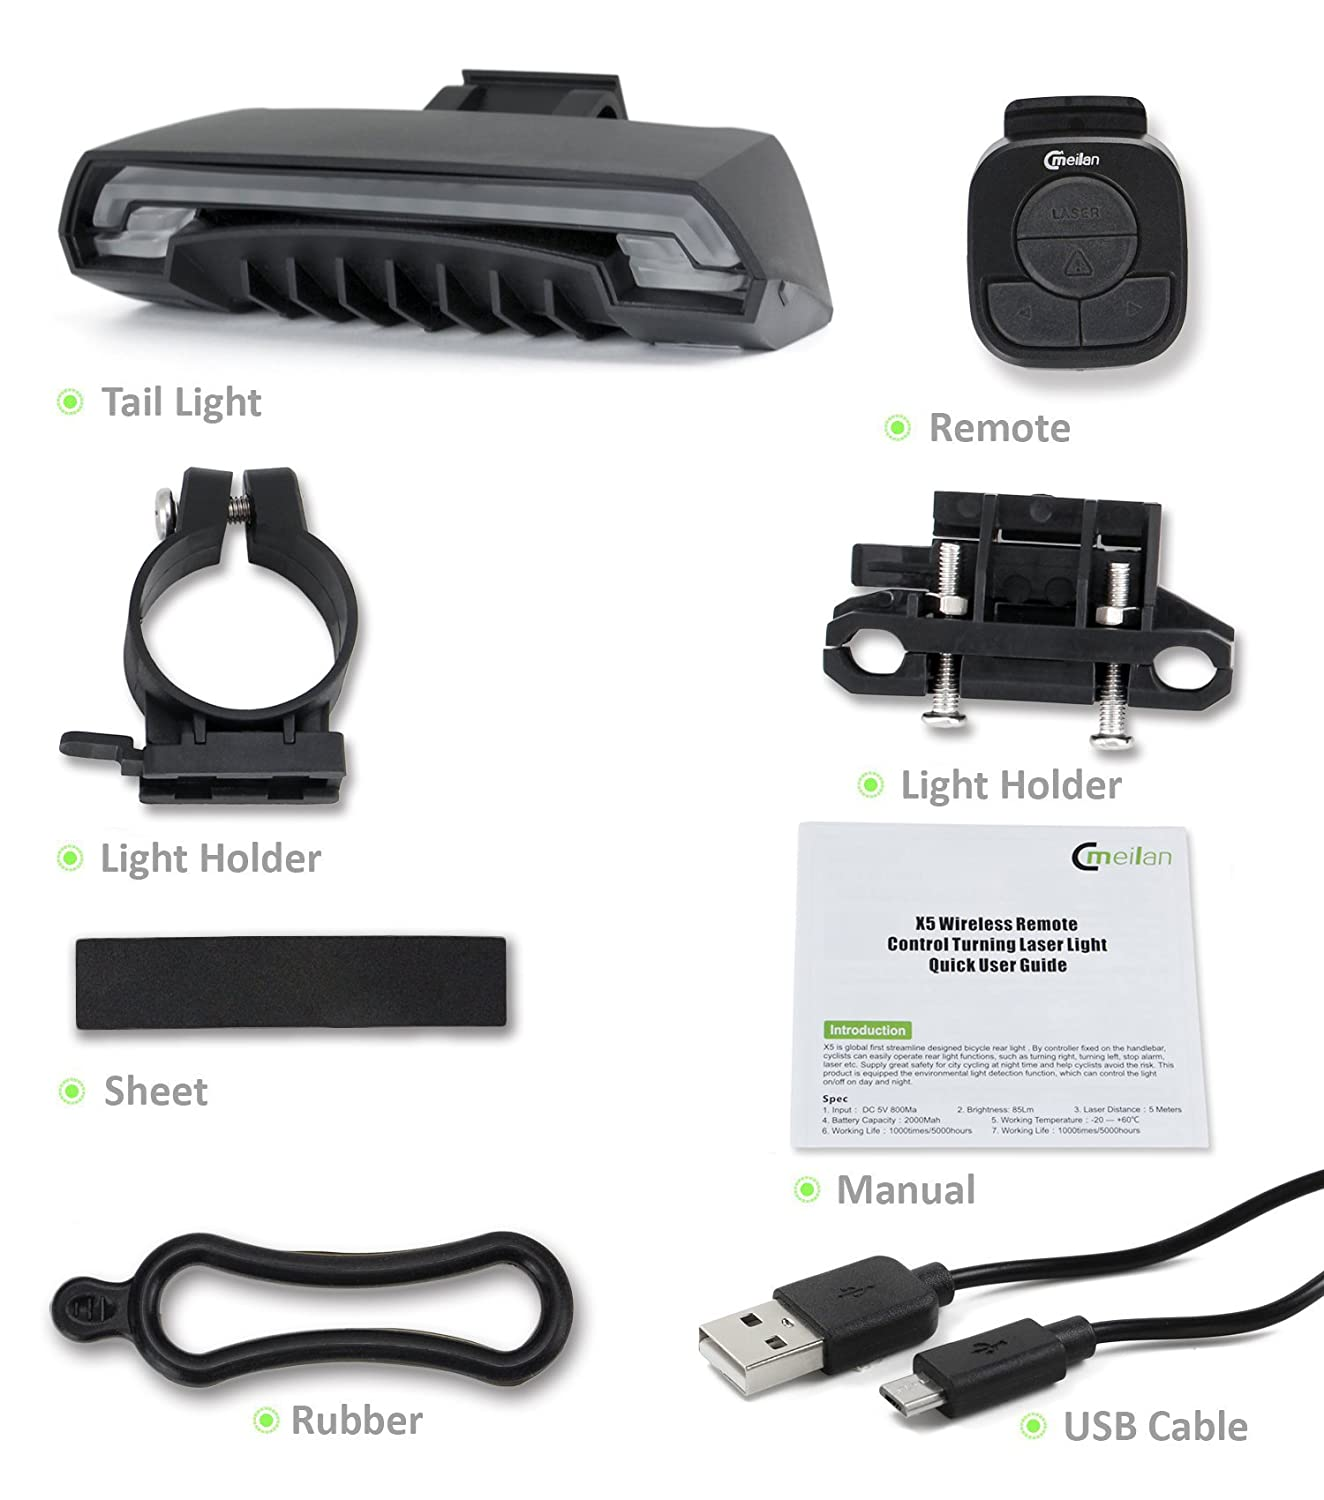 Meilan Smart Bike Tail Light X5 USB Rechargeable with Wireless ...